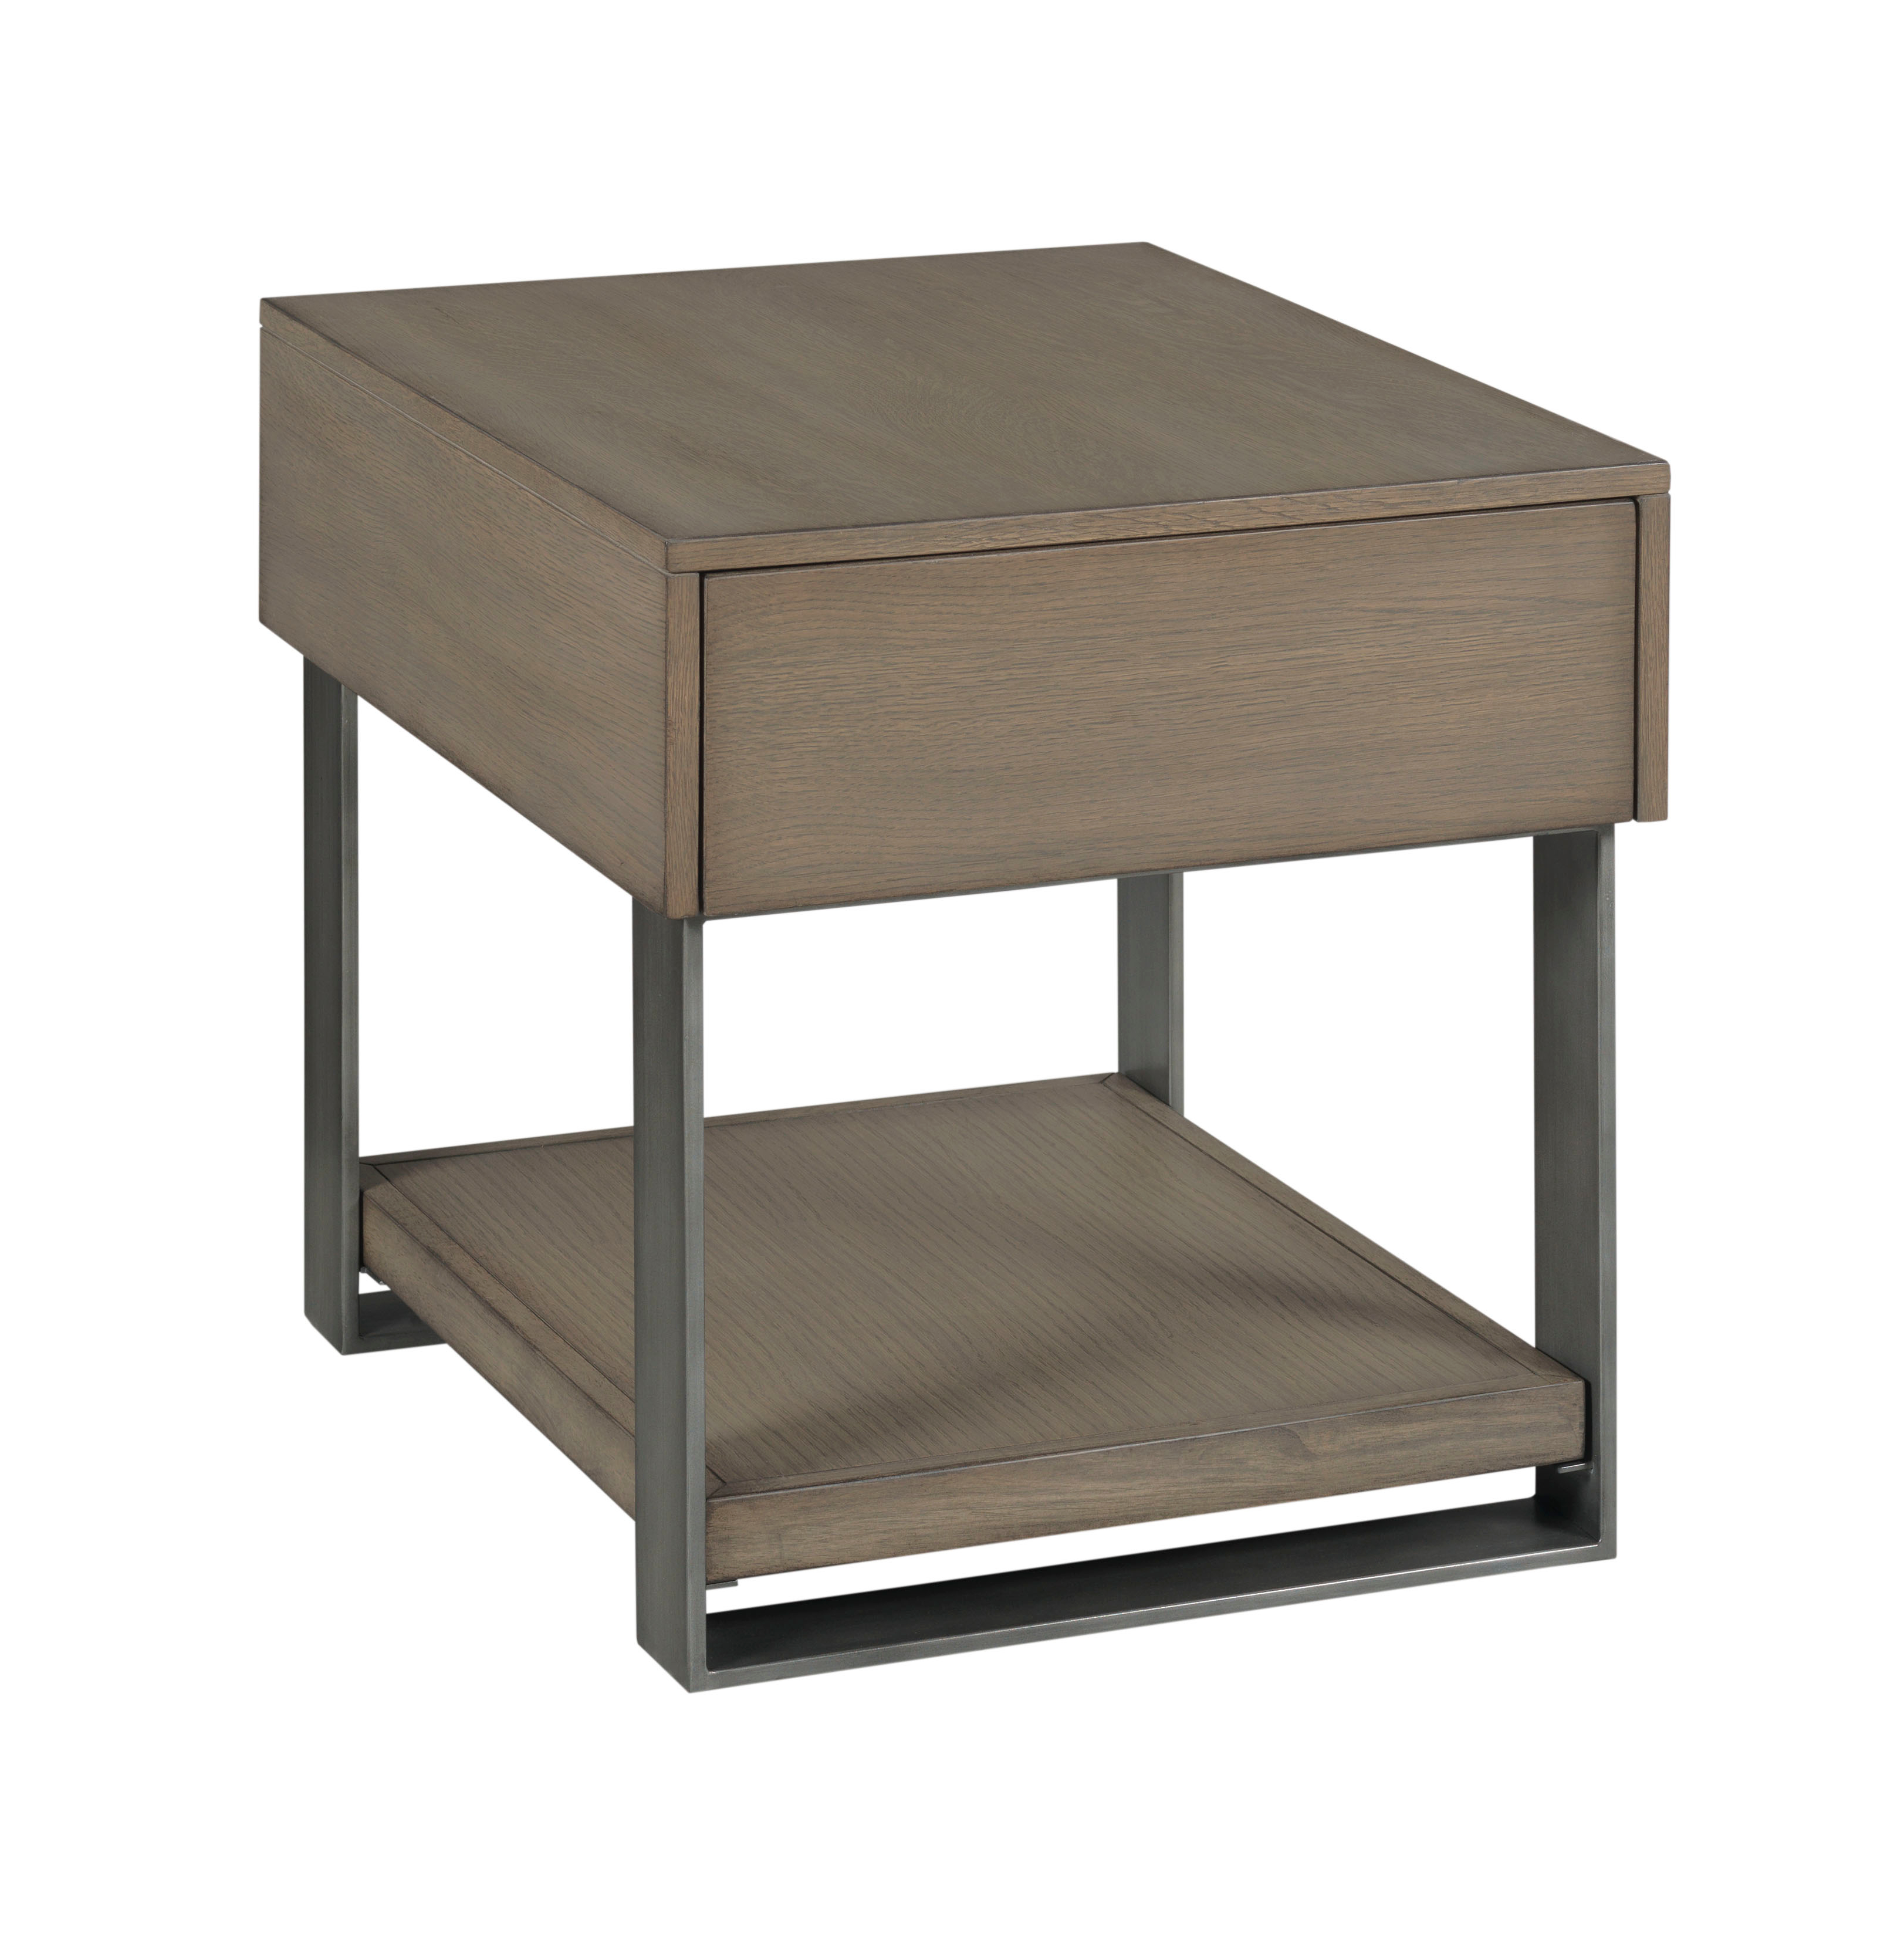 Stella End Table by Table Trends at Sprintz Furniture